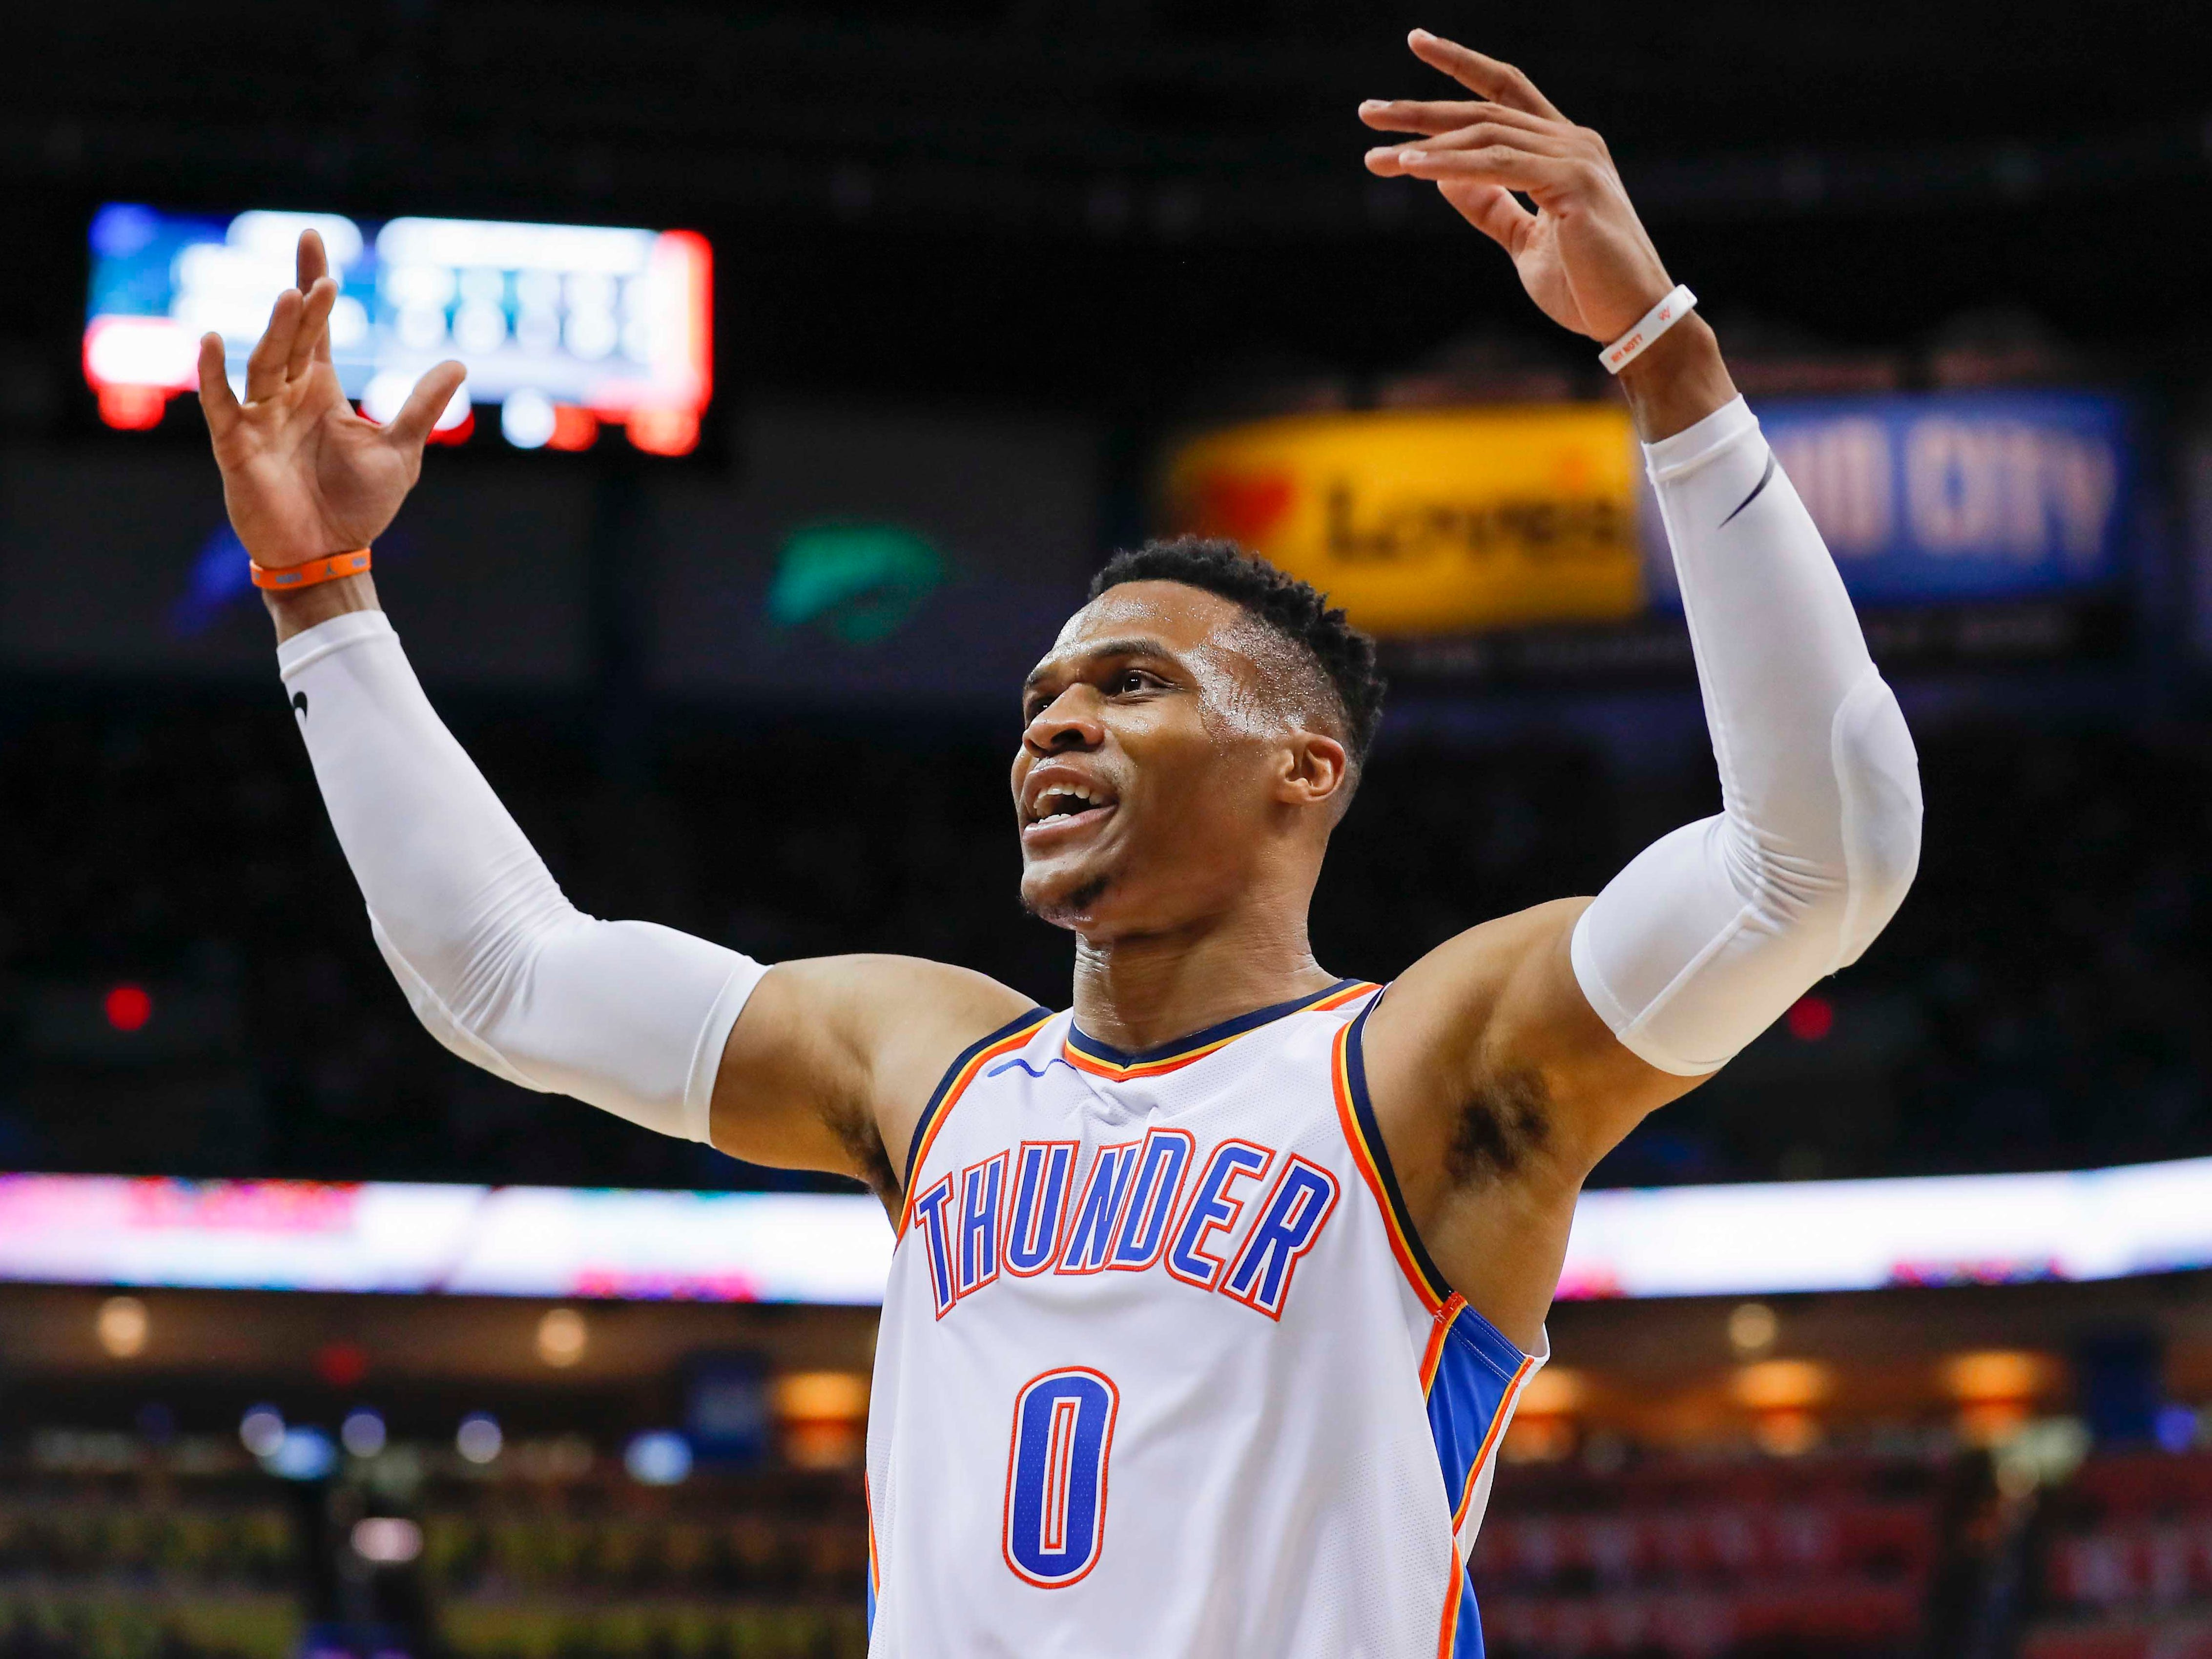 58. Russell Westbrook, Thunder (Jan. 22): 29 points, 14 assists, 10 rebounds in 123-114 win vs. Trail Blazers (14th of season).